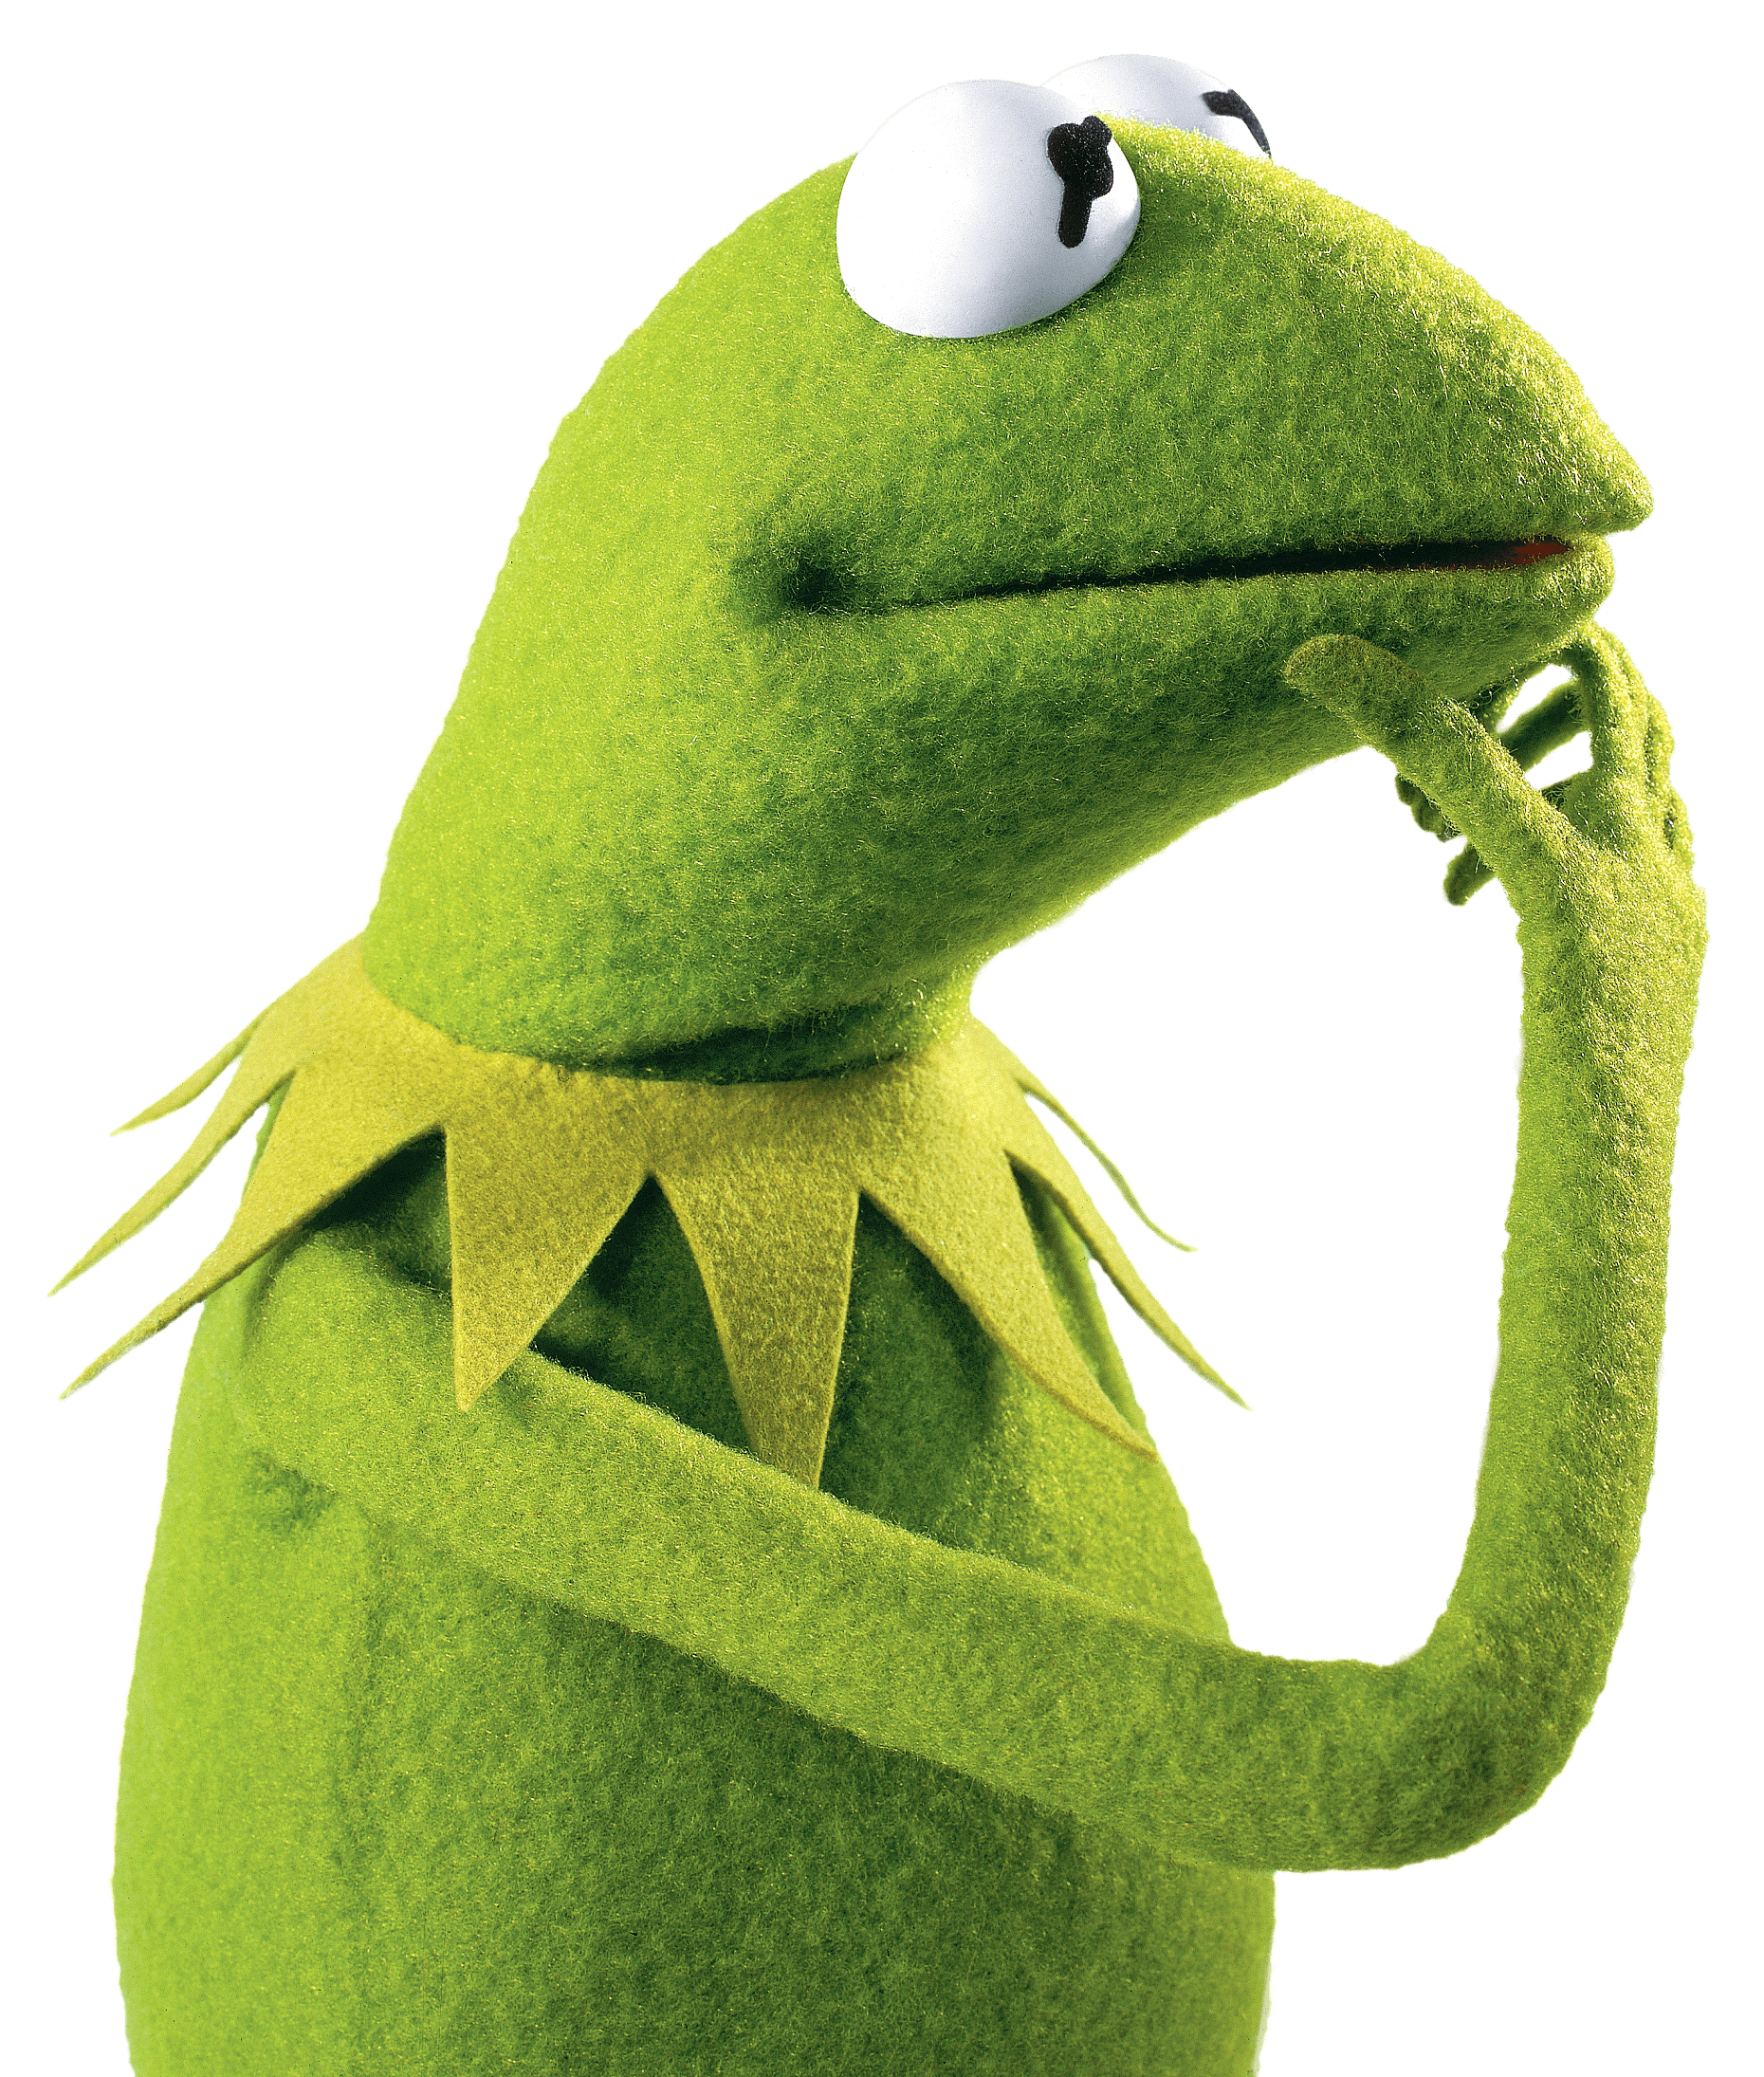 The frog thinking transparent. Kermit tea png image free download